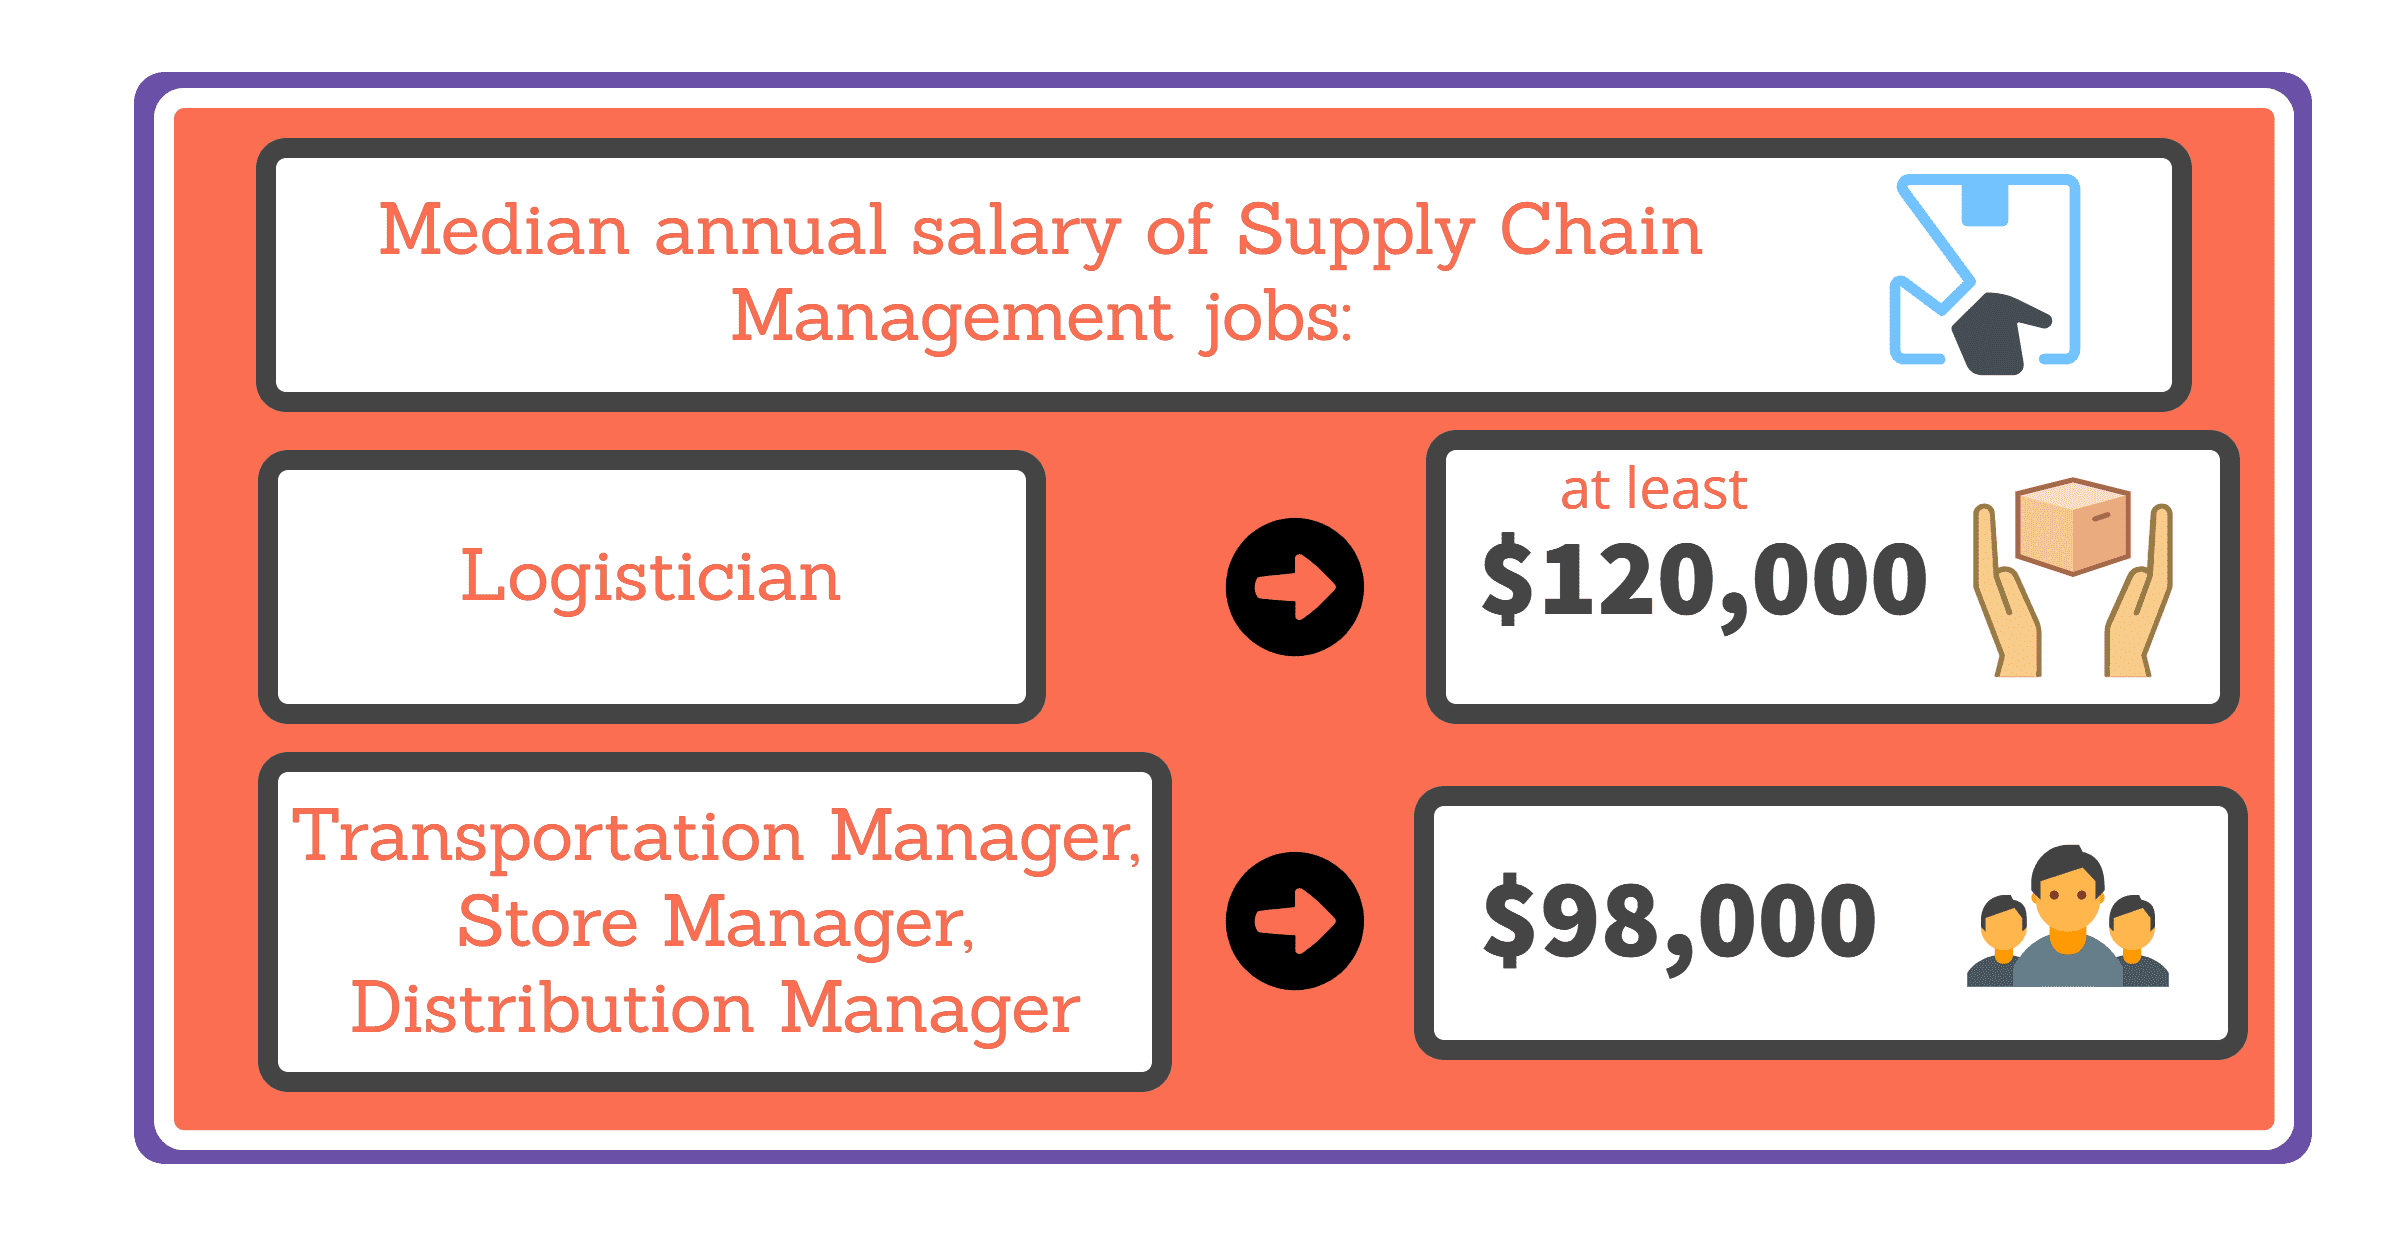 Supply Chain Mgmt median salaries